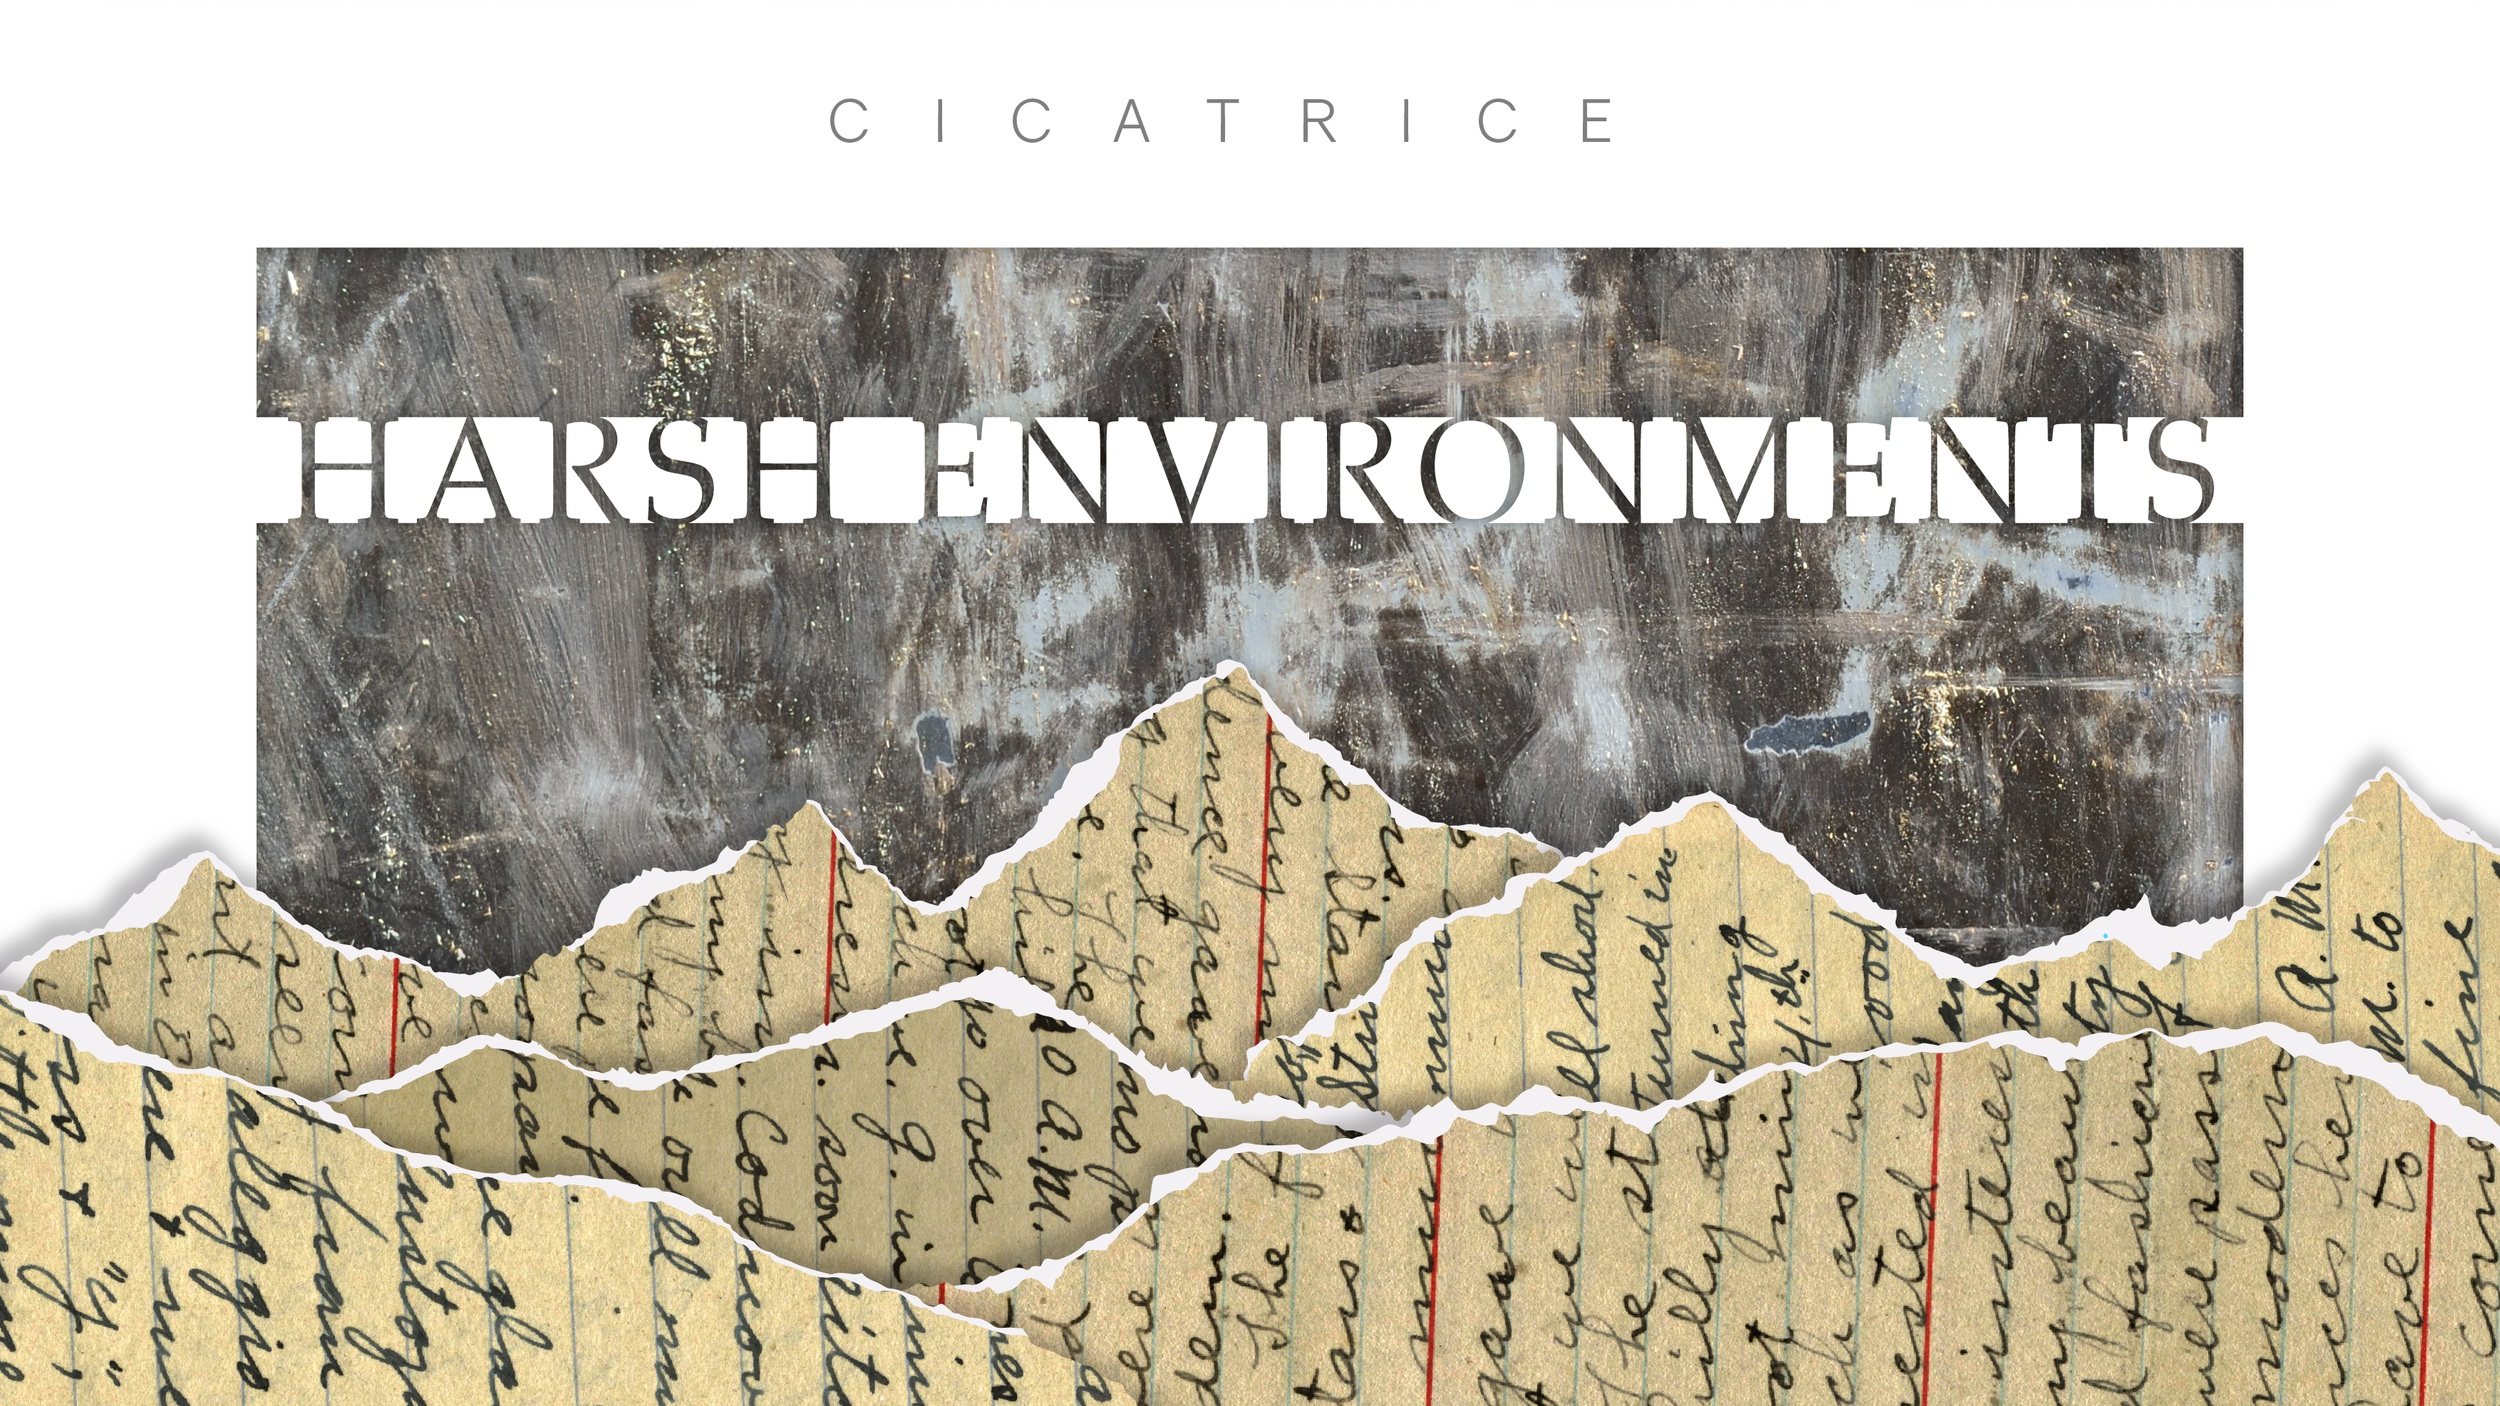 Cicatrice - Visual design for the university's creative writing journal